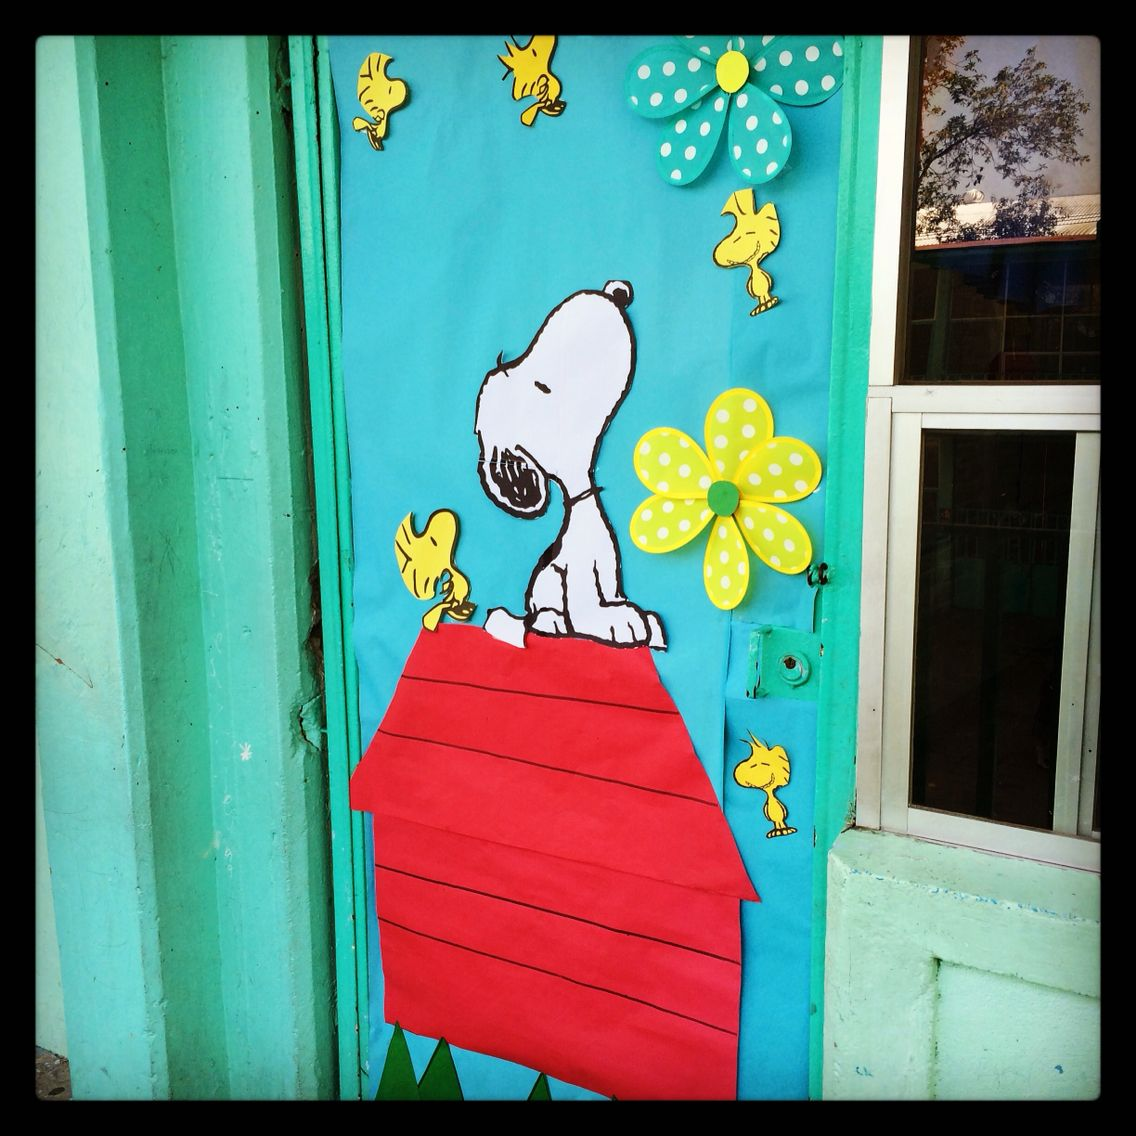 Snoopy for the classroom so cute welcome spring door 4 my class pinterest snoopy - Spring door decorations for school ...